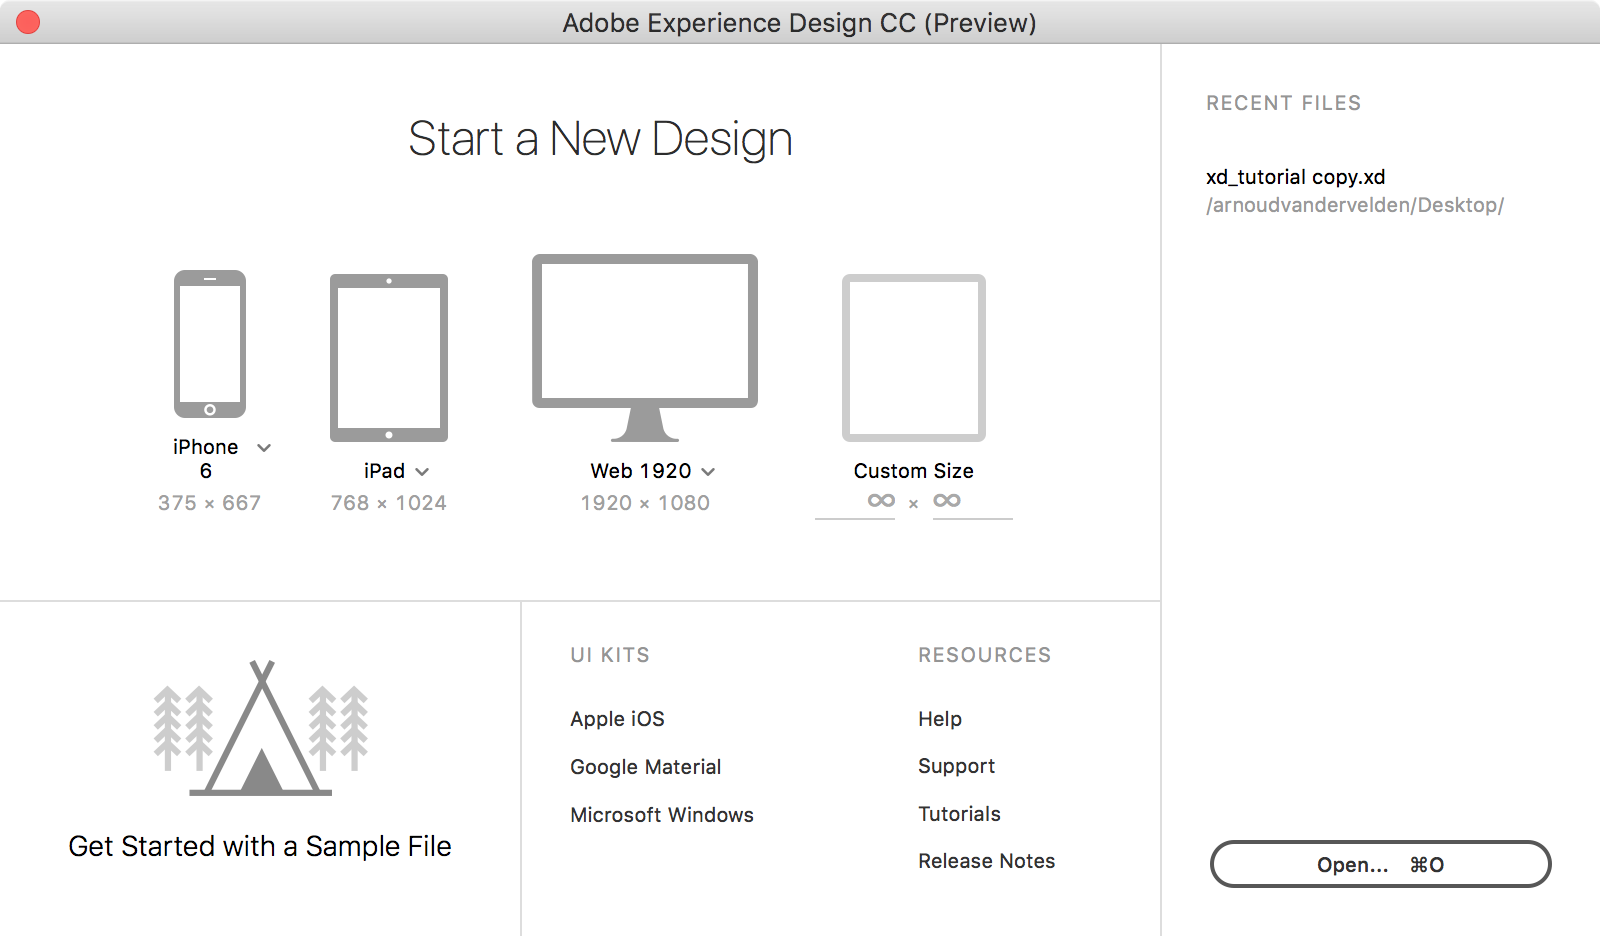 The differences between Adobe Experience Design and Sketch App